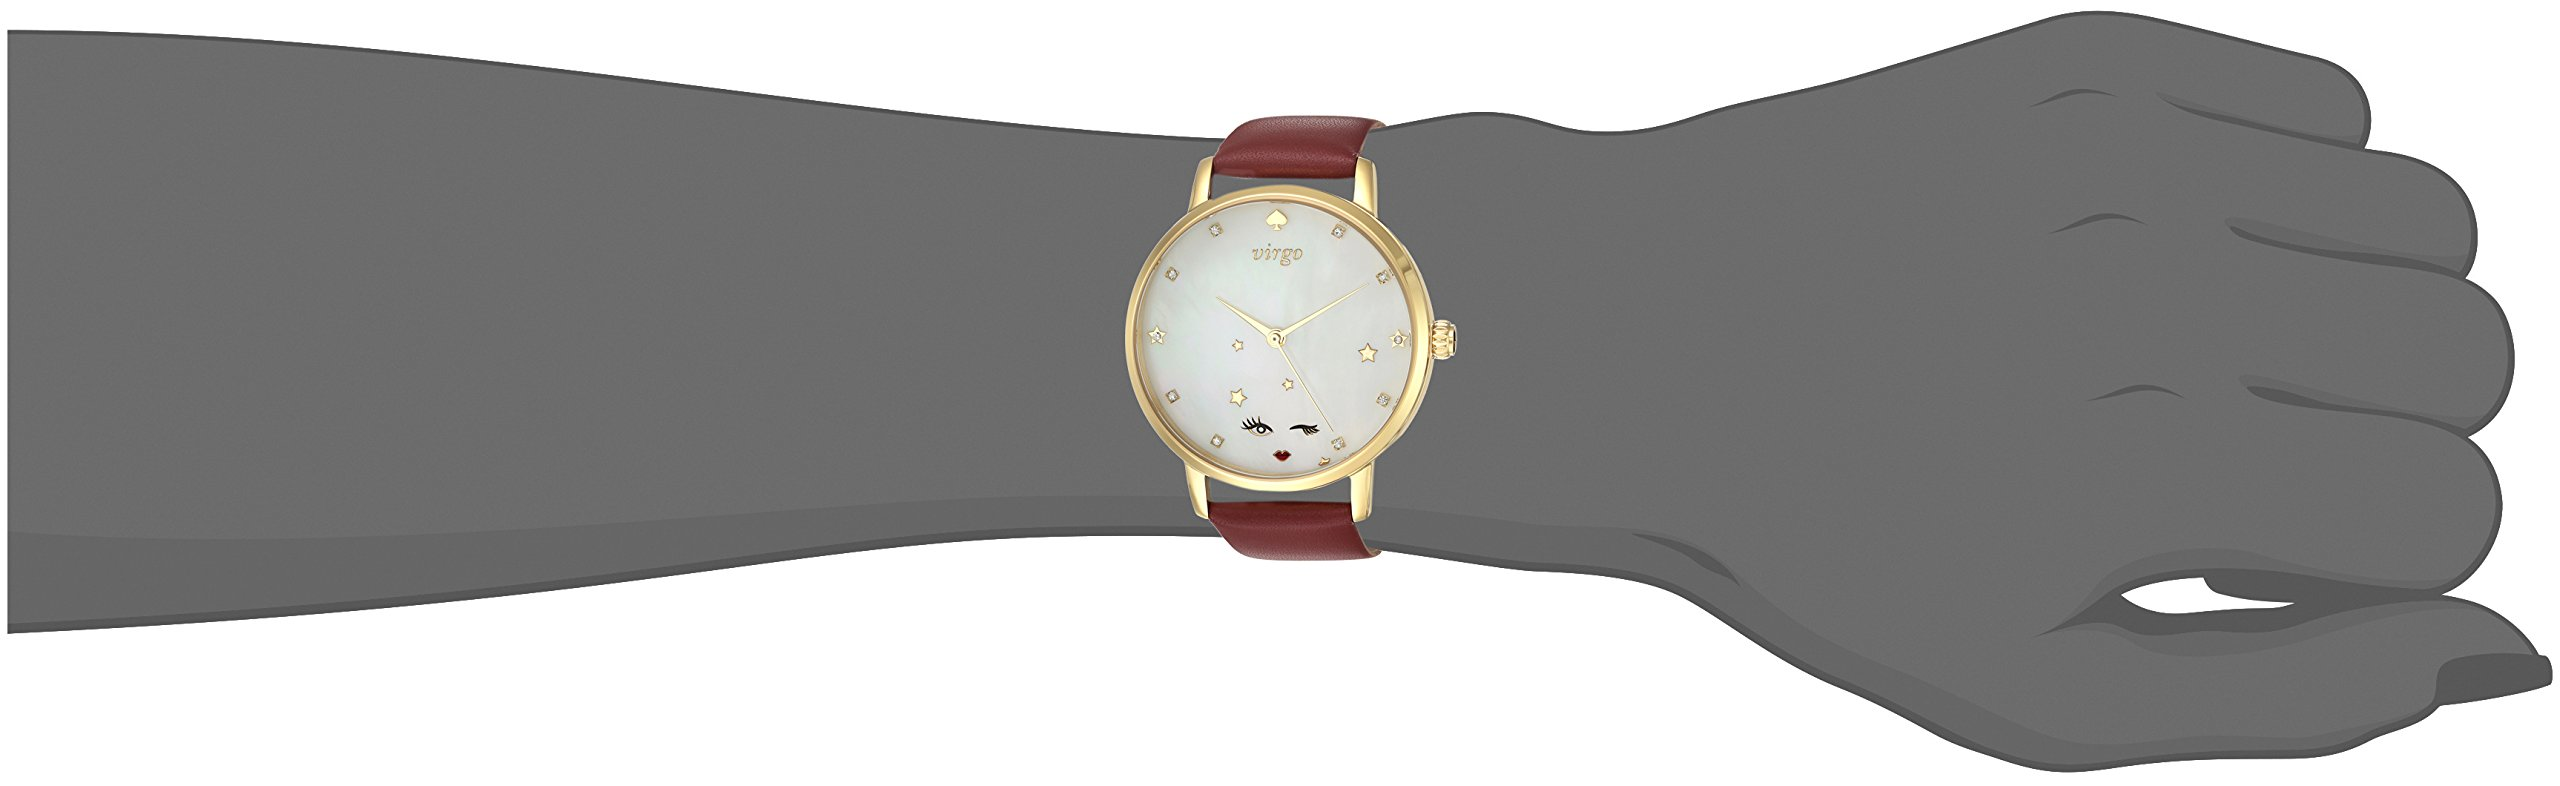 kate spade new york Women's 'Metro' Quartz Stainless Steel and Leather Casual Watch, Color:Red (Model: KSW1189) by Kate Spade New York (Image #2)